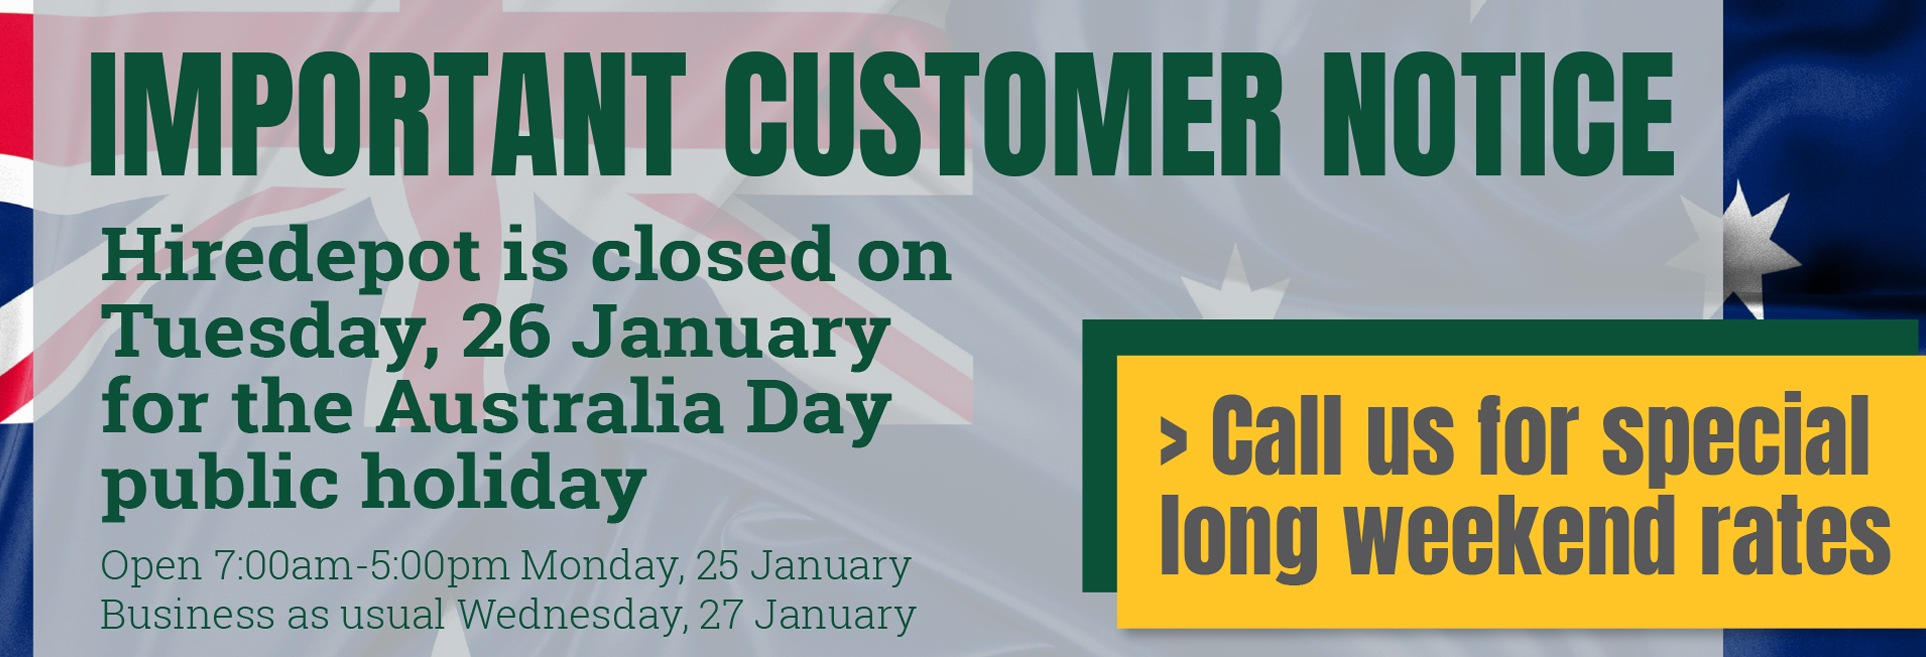 Important customer notice - Australia Day 2021